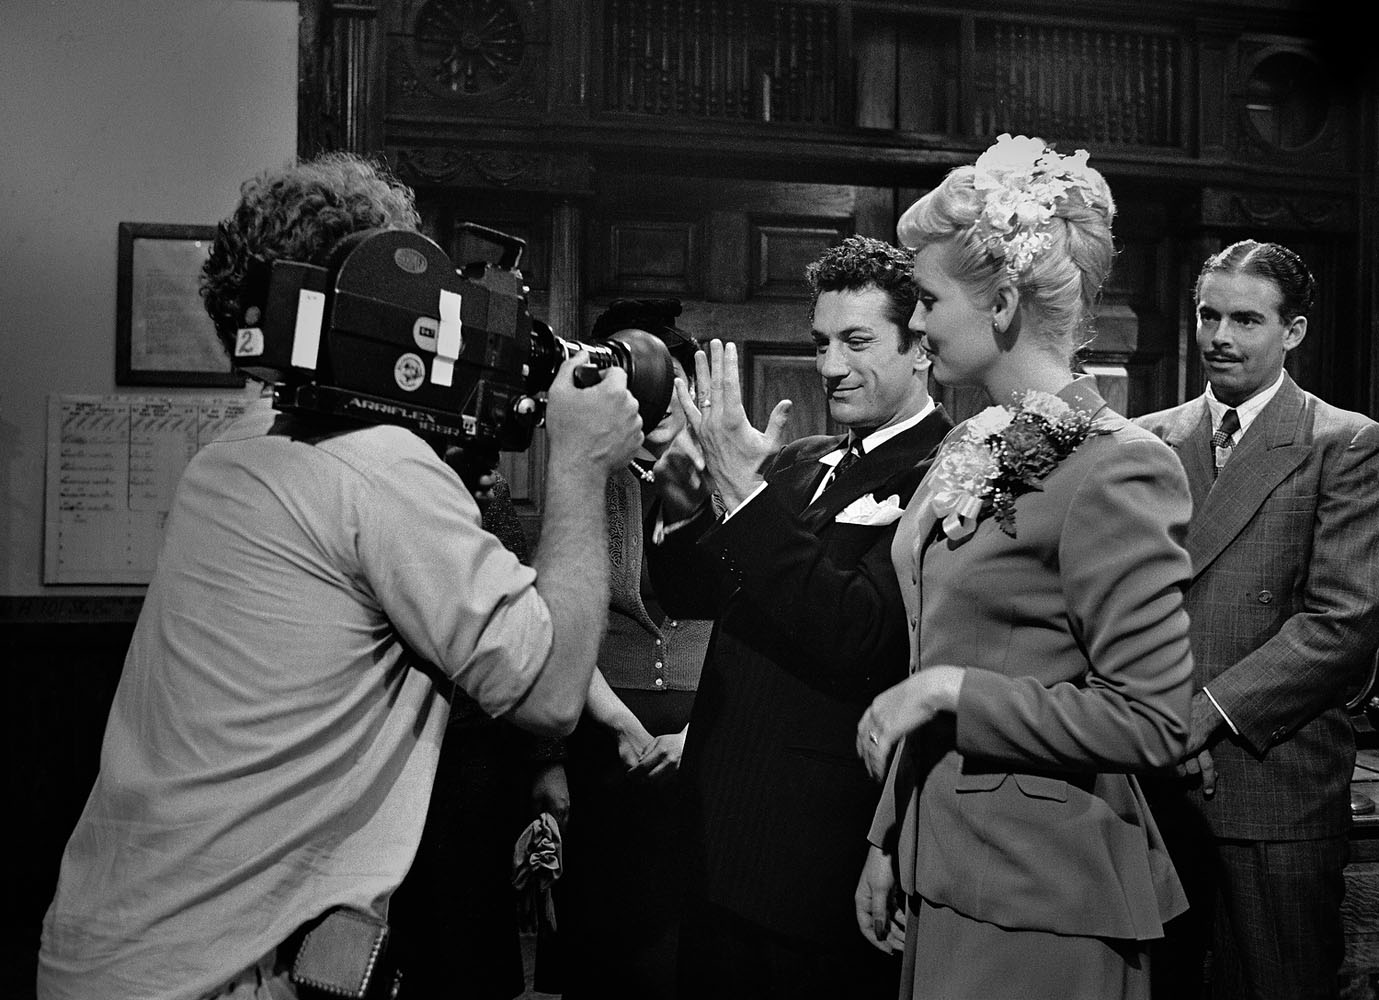 Mike Chapman, cinematographer, shoots a scene which would run in the movie as home footage — the only color segment in the black-and-white film.